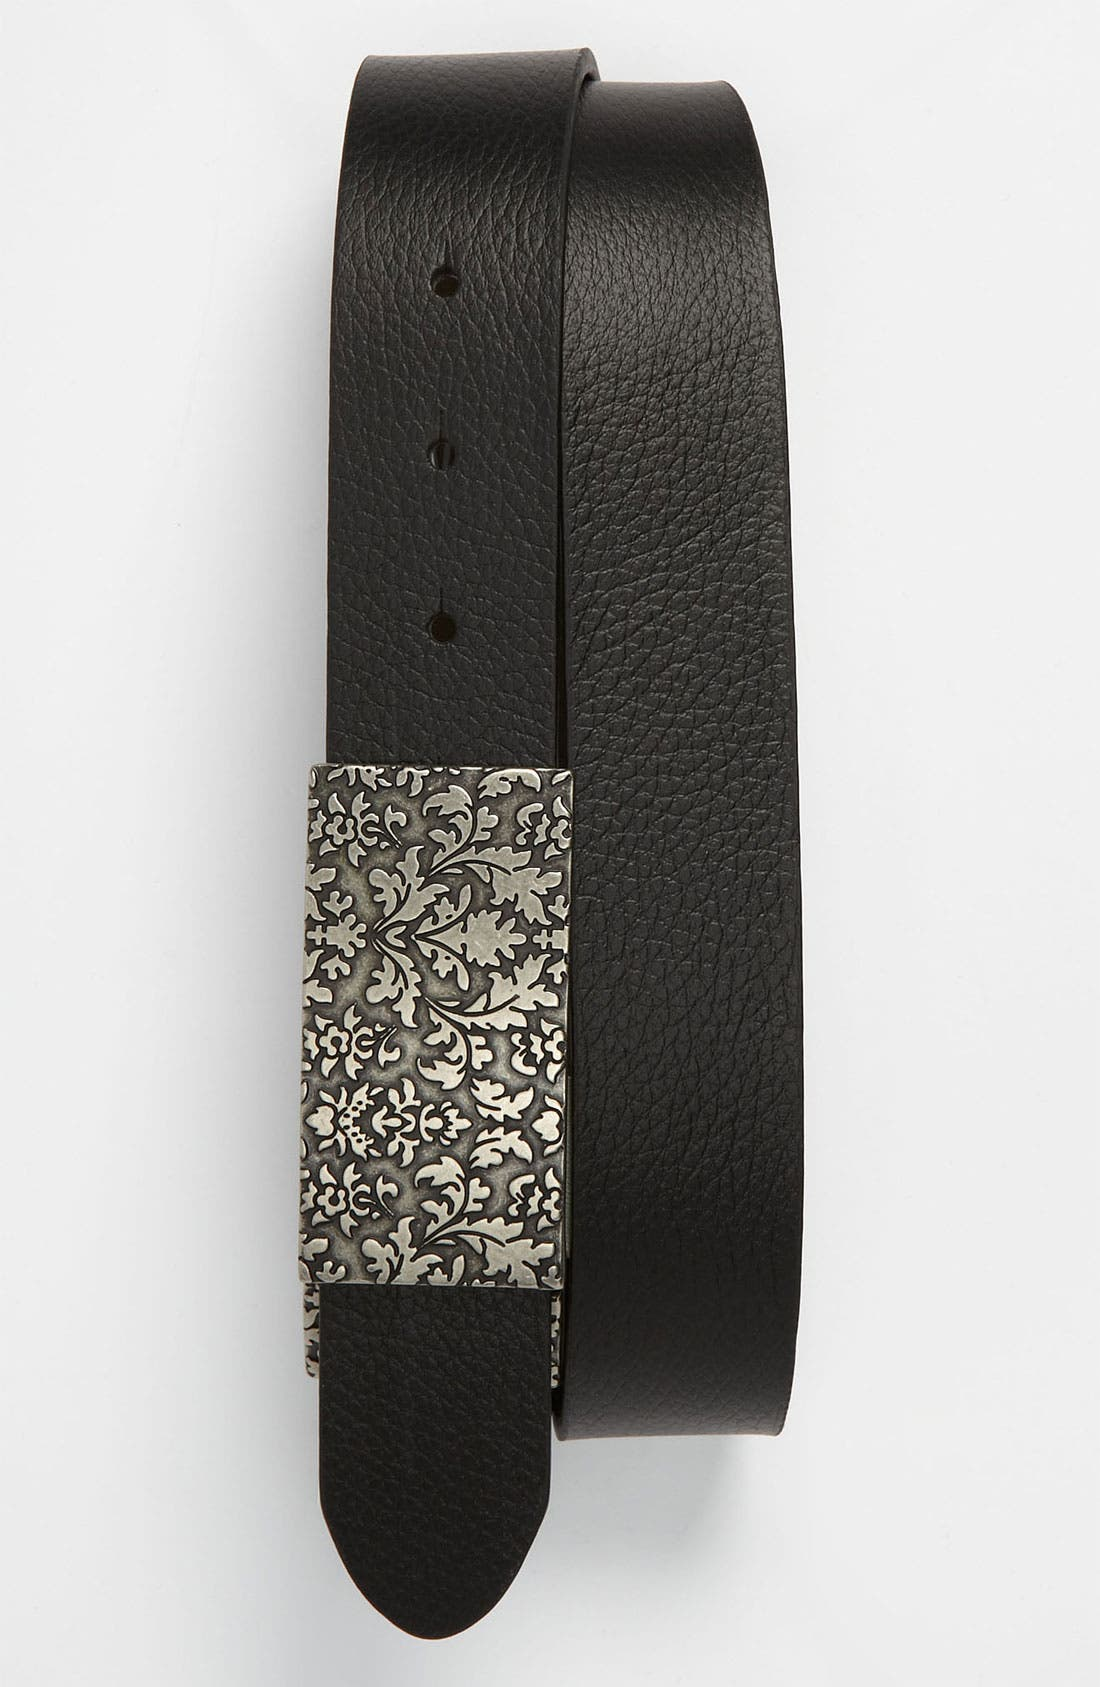 Alternate Image 1 Selected - Robert Graham 'Mathis' Reversible Leather Belt